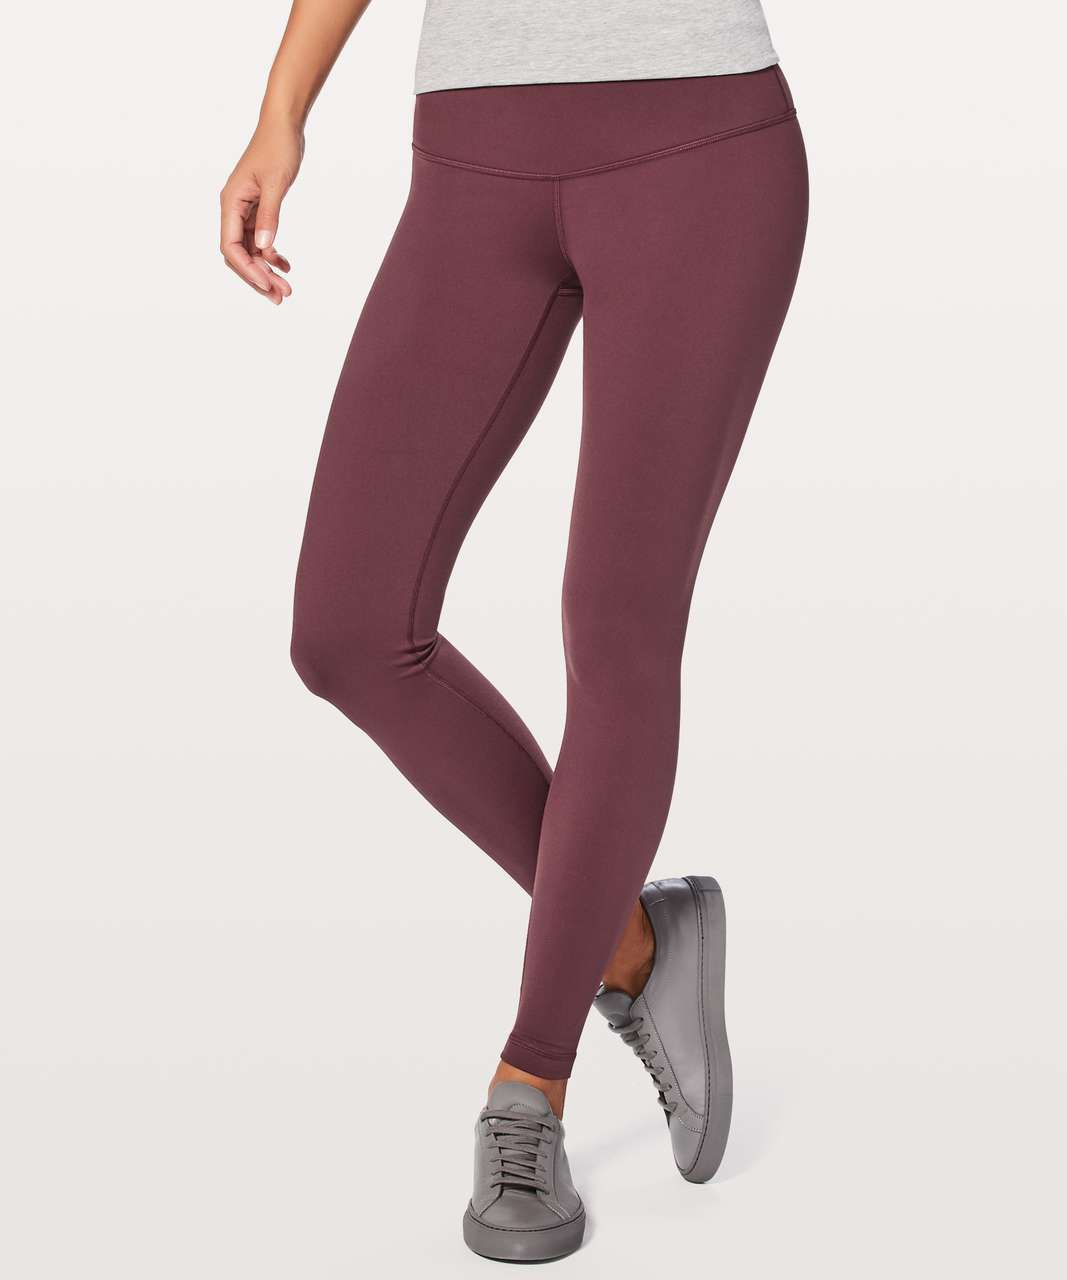 5aaa5e99c970f Lululemon Wunder Under Low-Rise Tight *Full-On Luon 28